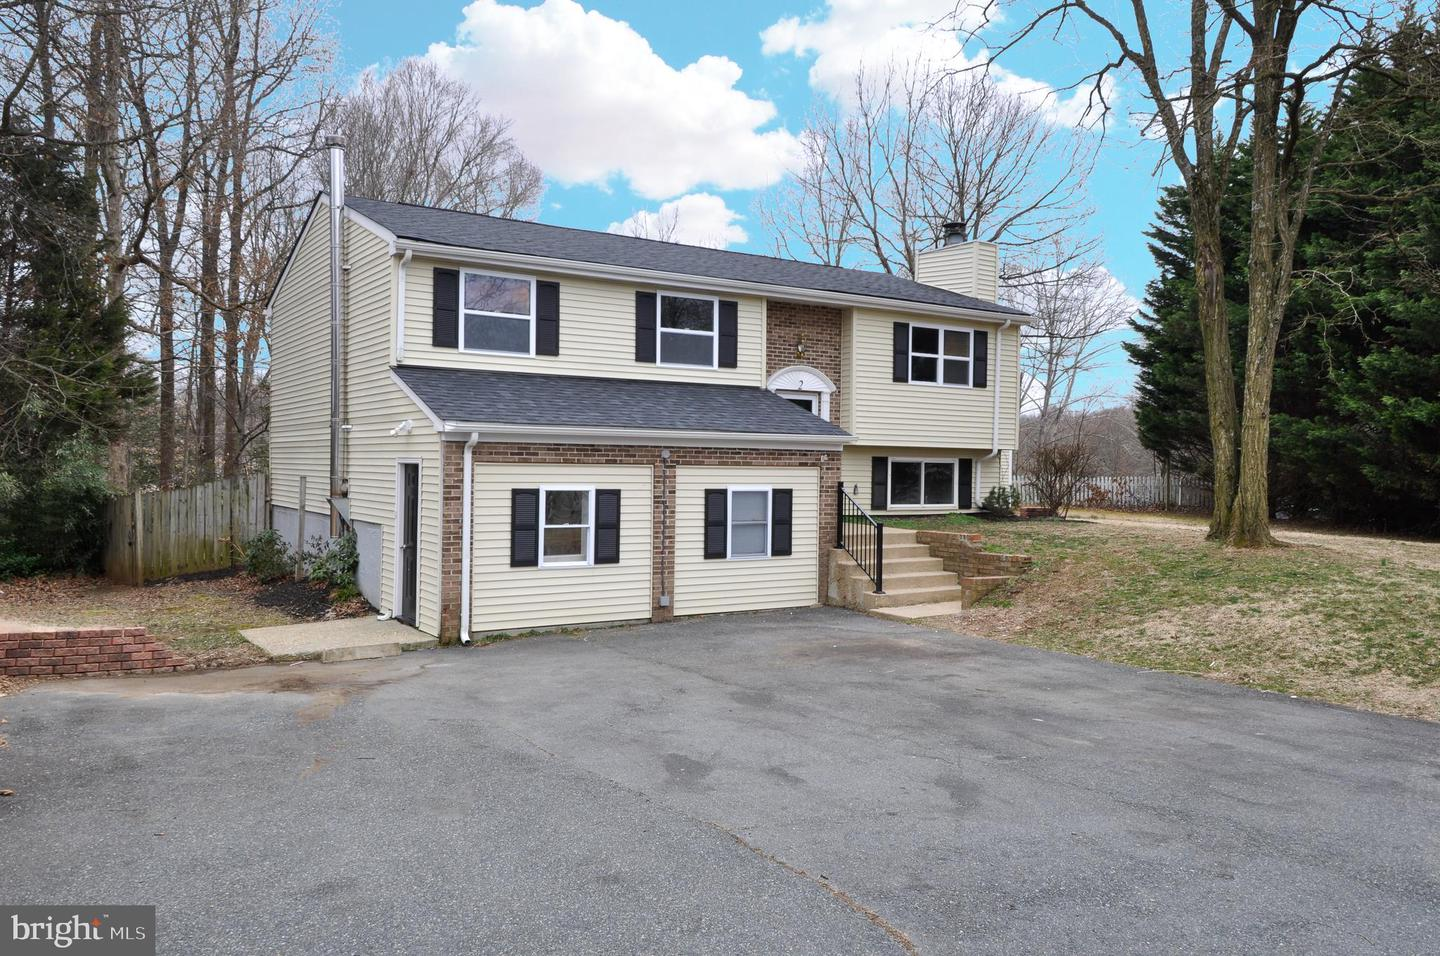 Single Family for Sale at 2 Edgecliff Ln 2 Edgecliff Ln Stafford, Virginia 22554 United States